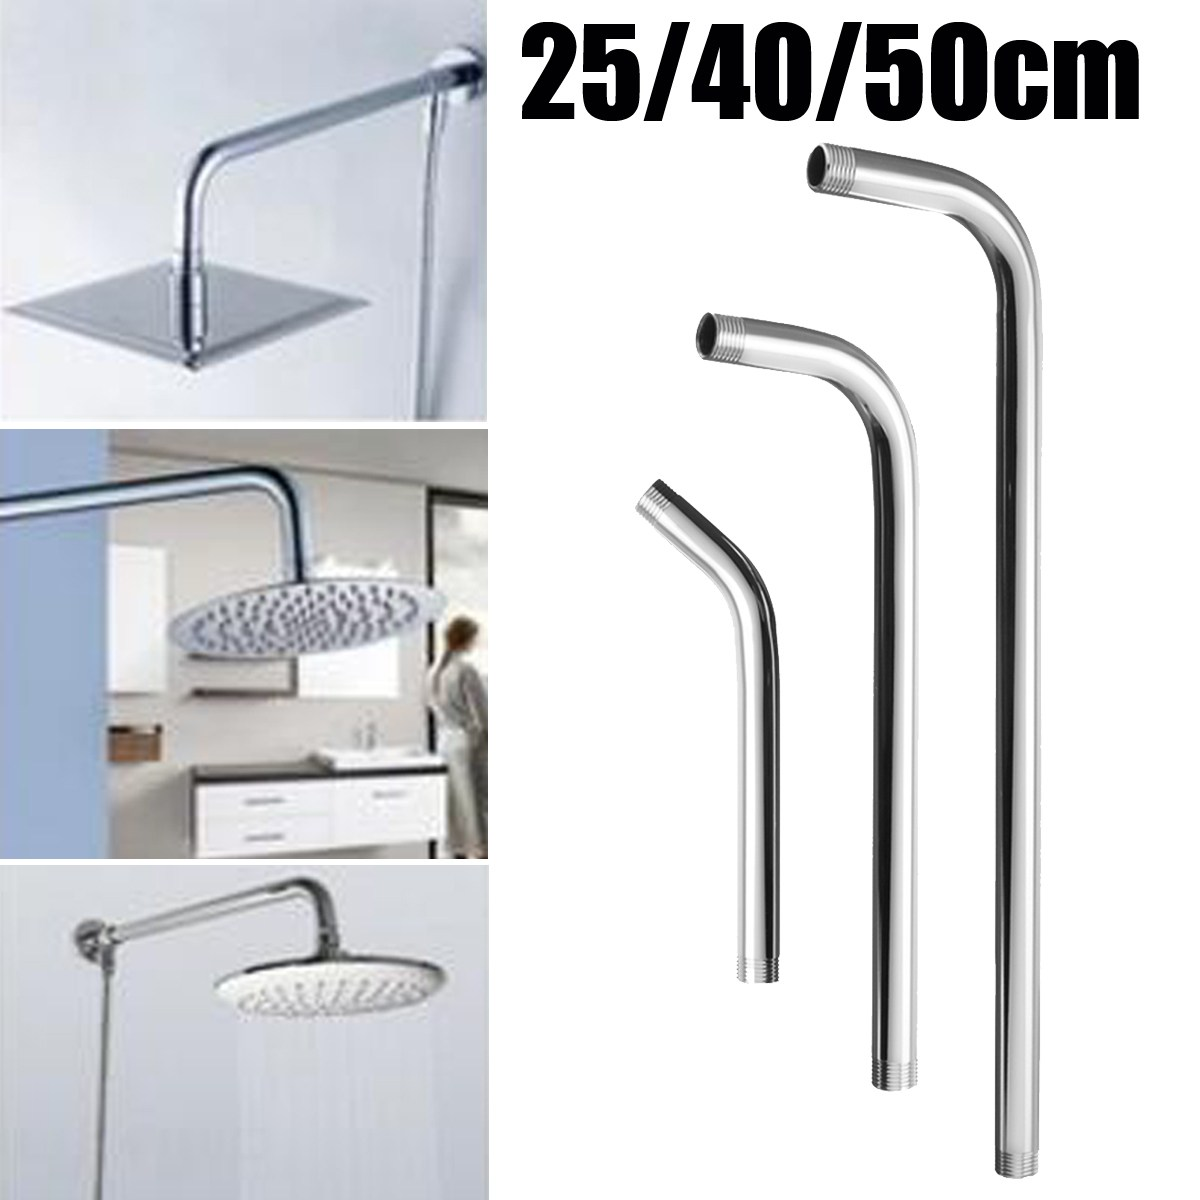 Us 5 51 23 Off New 25cm 40cm 50cm Wall Mounted Shower Extension Arm Angled Extra Pipe For Rain Shower Head Bathroom Tools Accessories In Shower